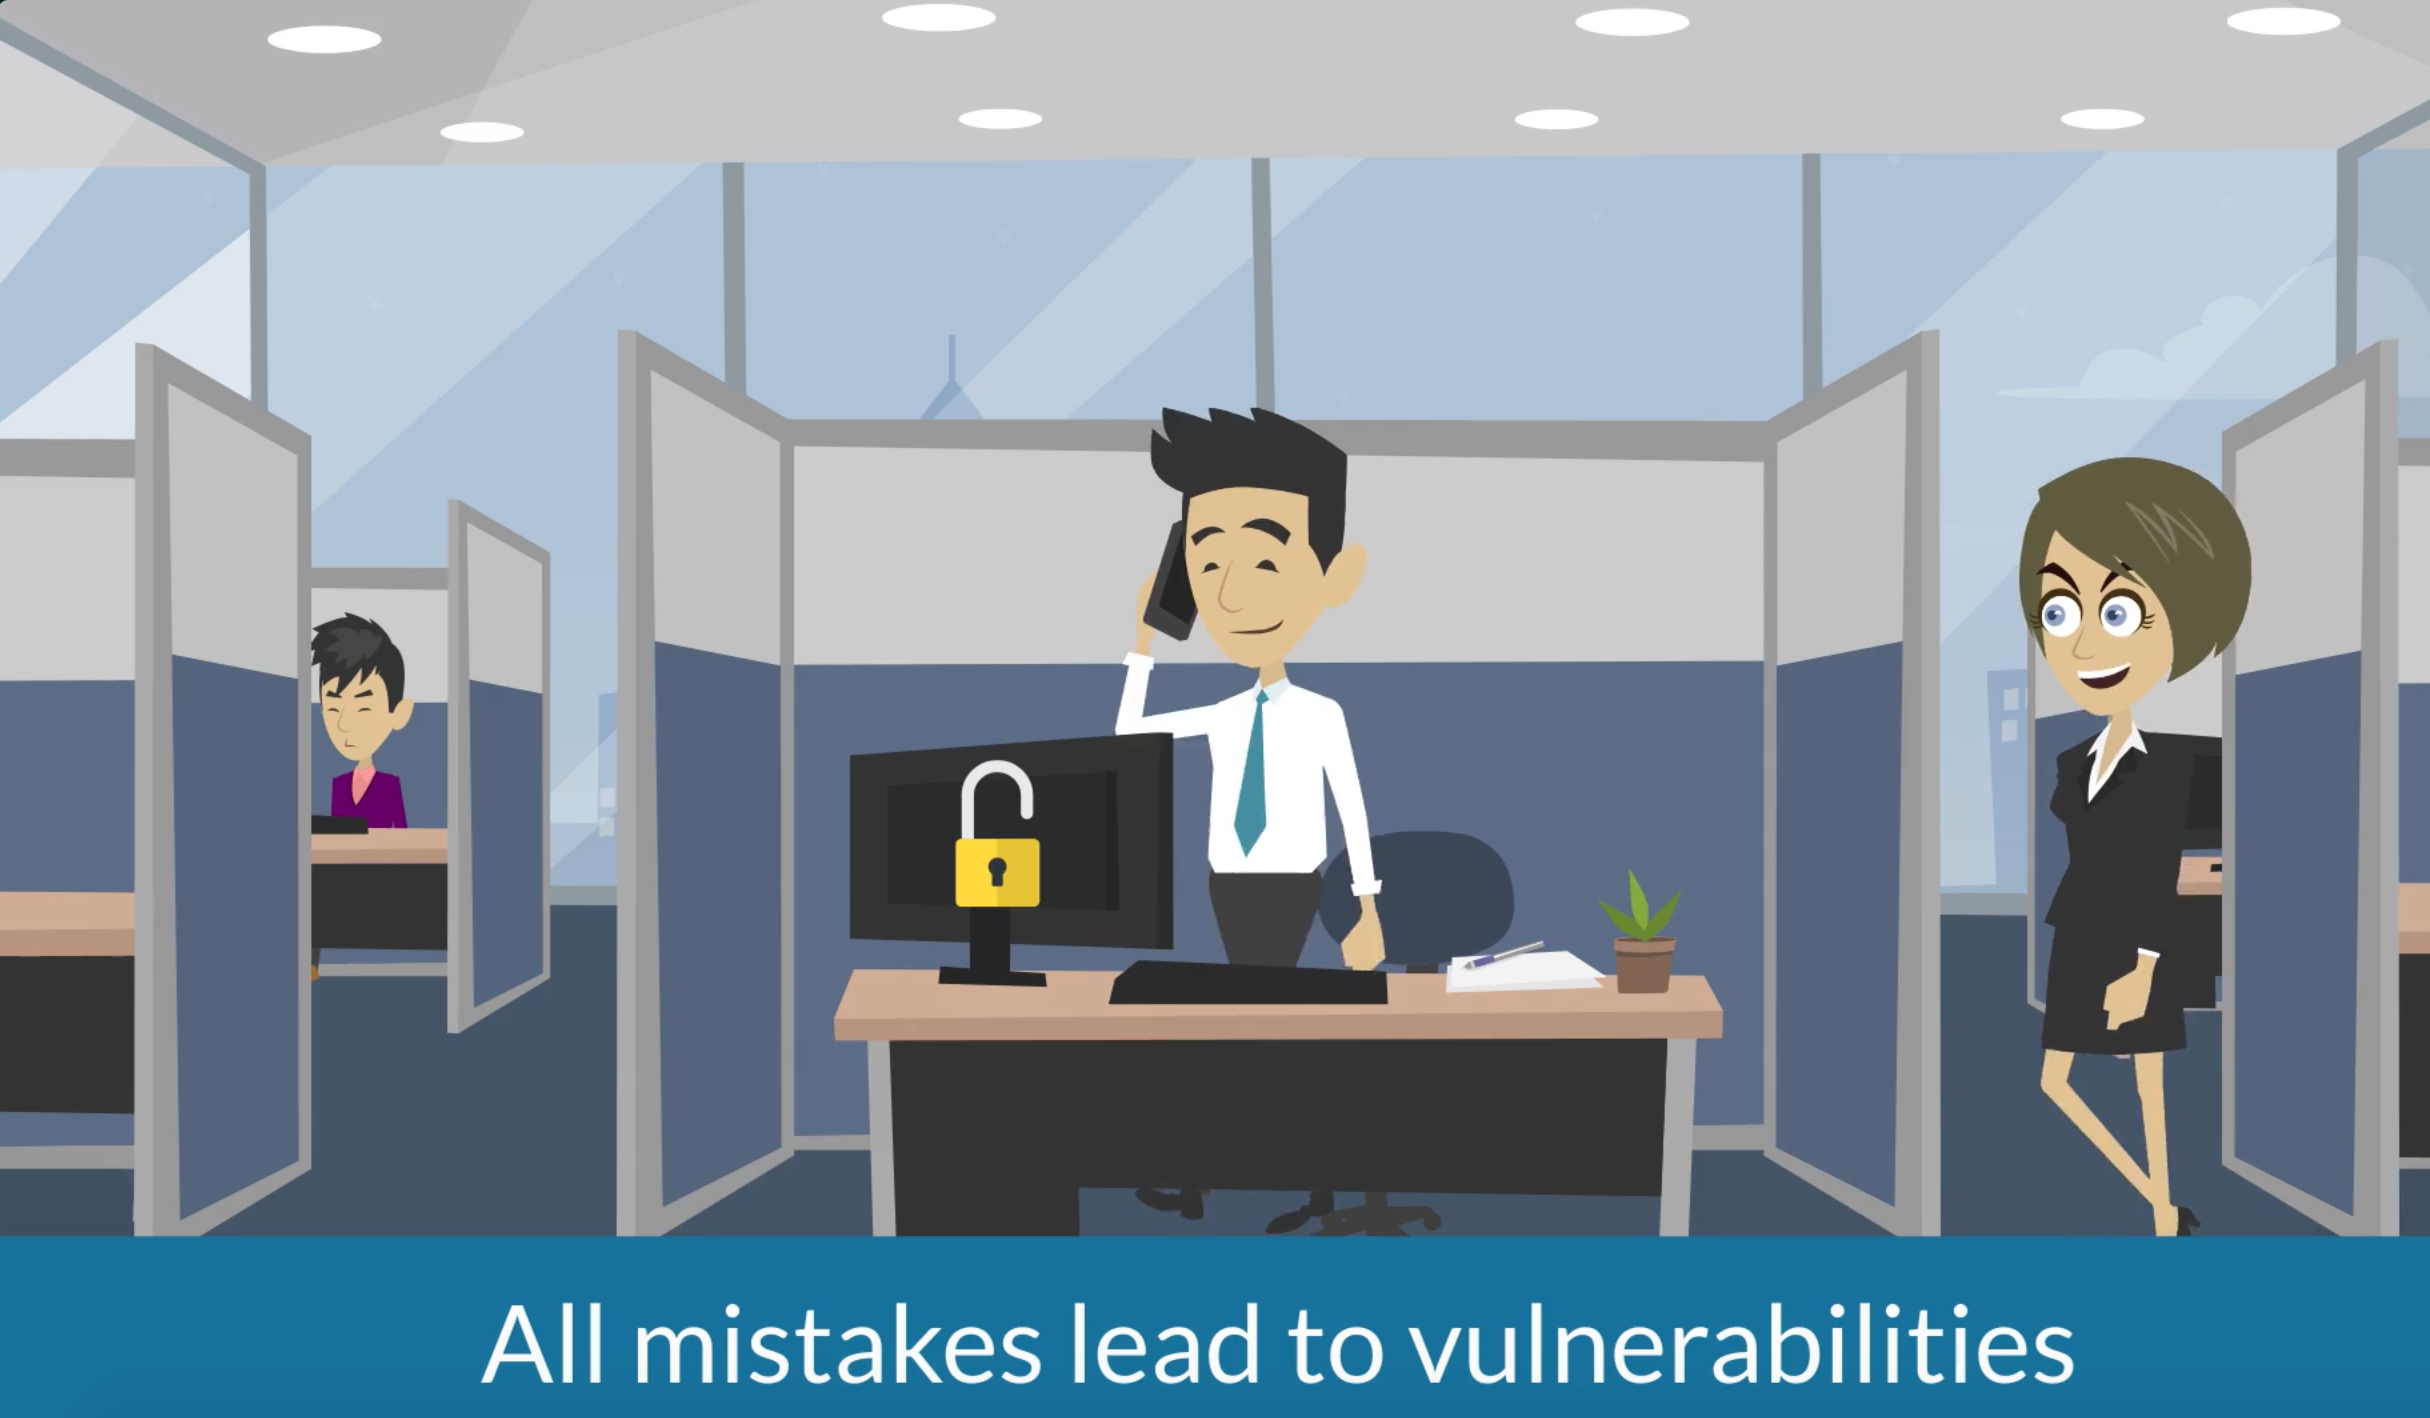 Human Factors lead to vulnerabilities